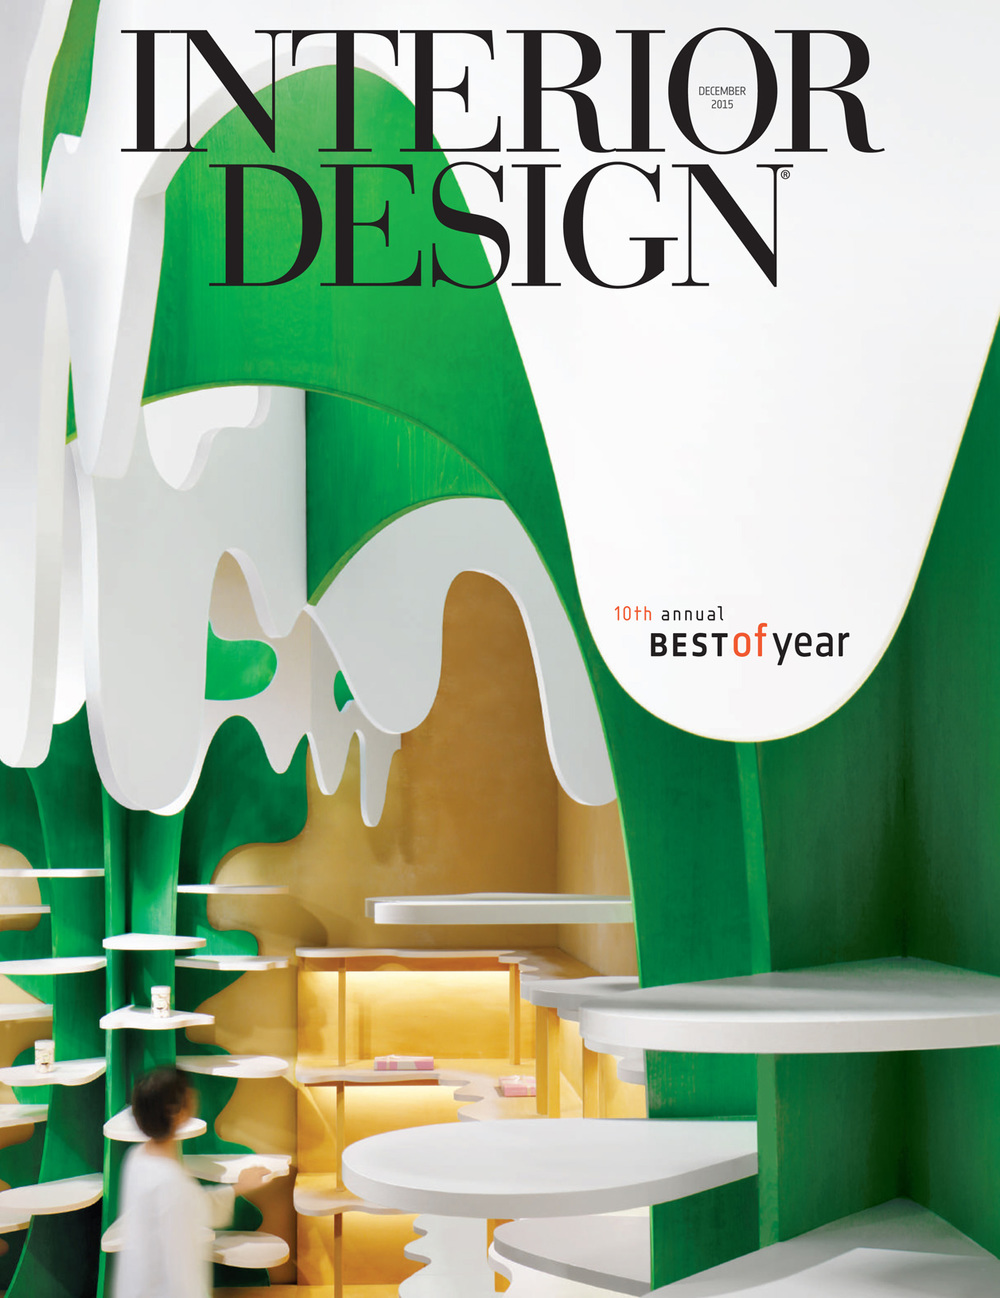 Interior Design Magazine - December 2015